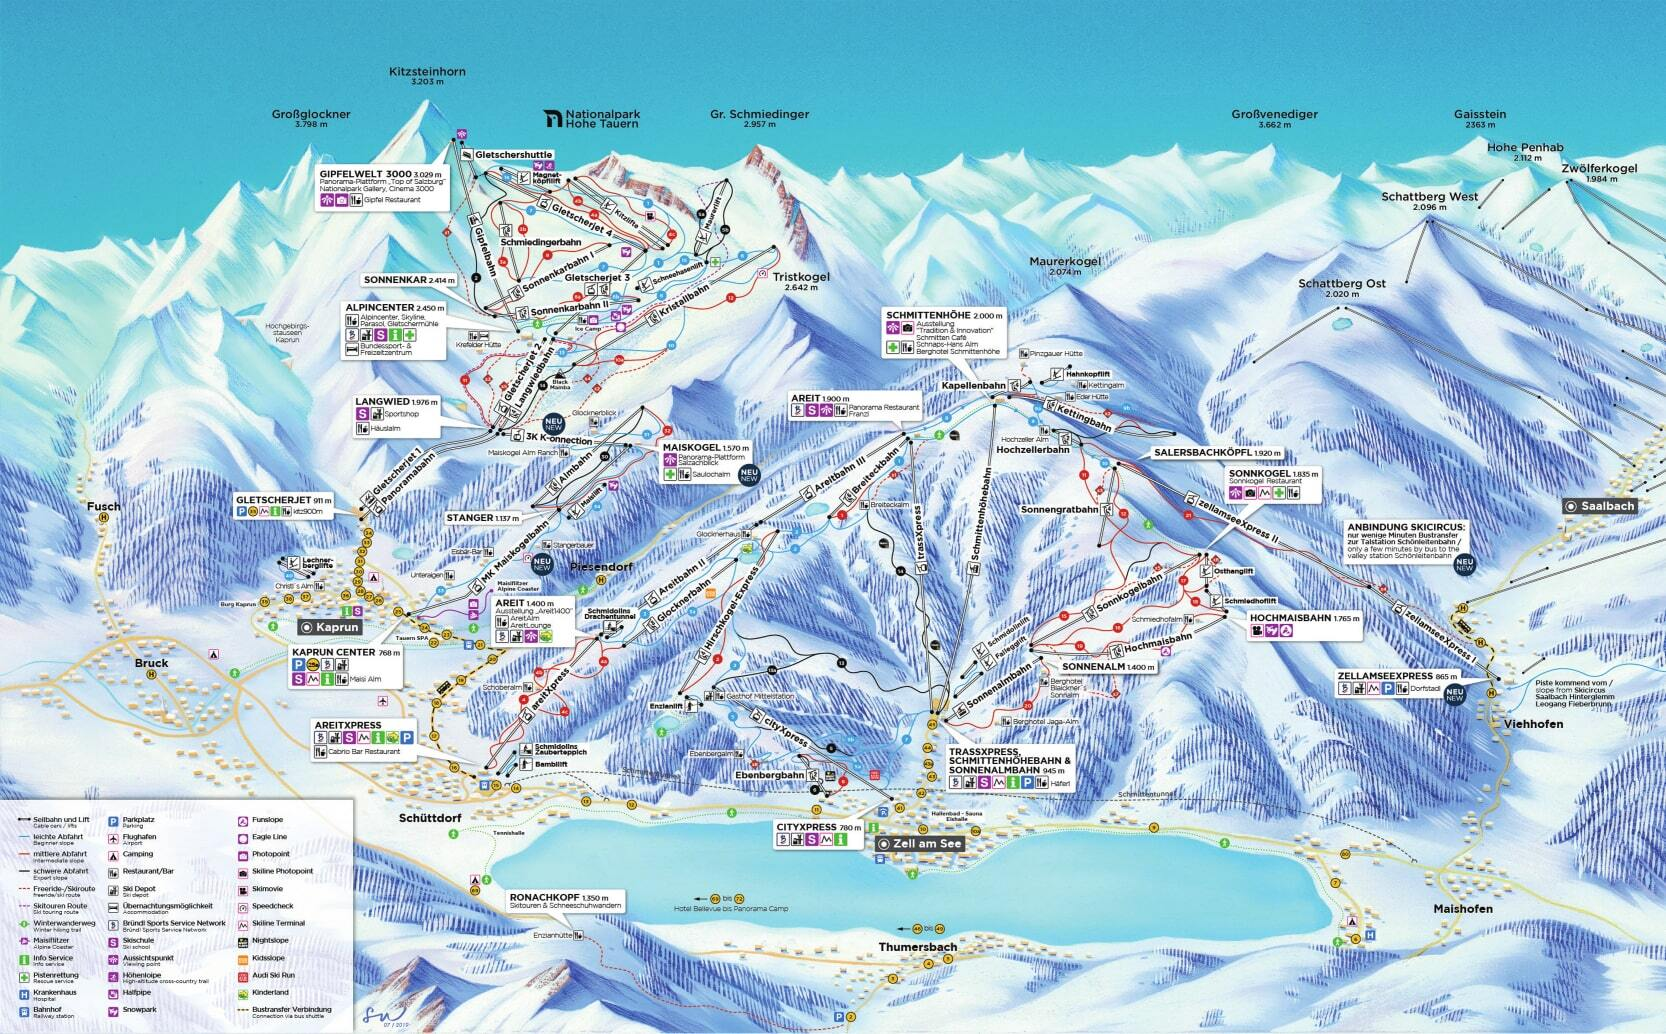 Zell am See Piste / Trail Map